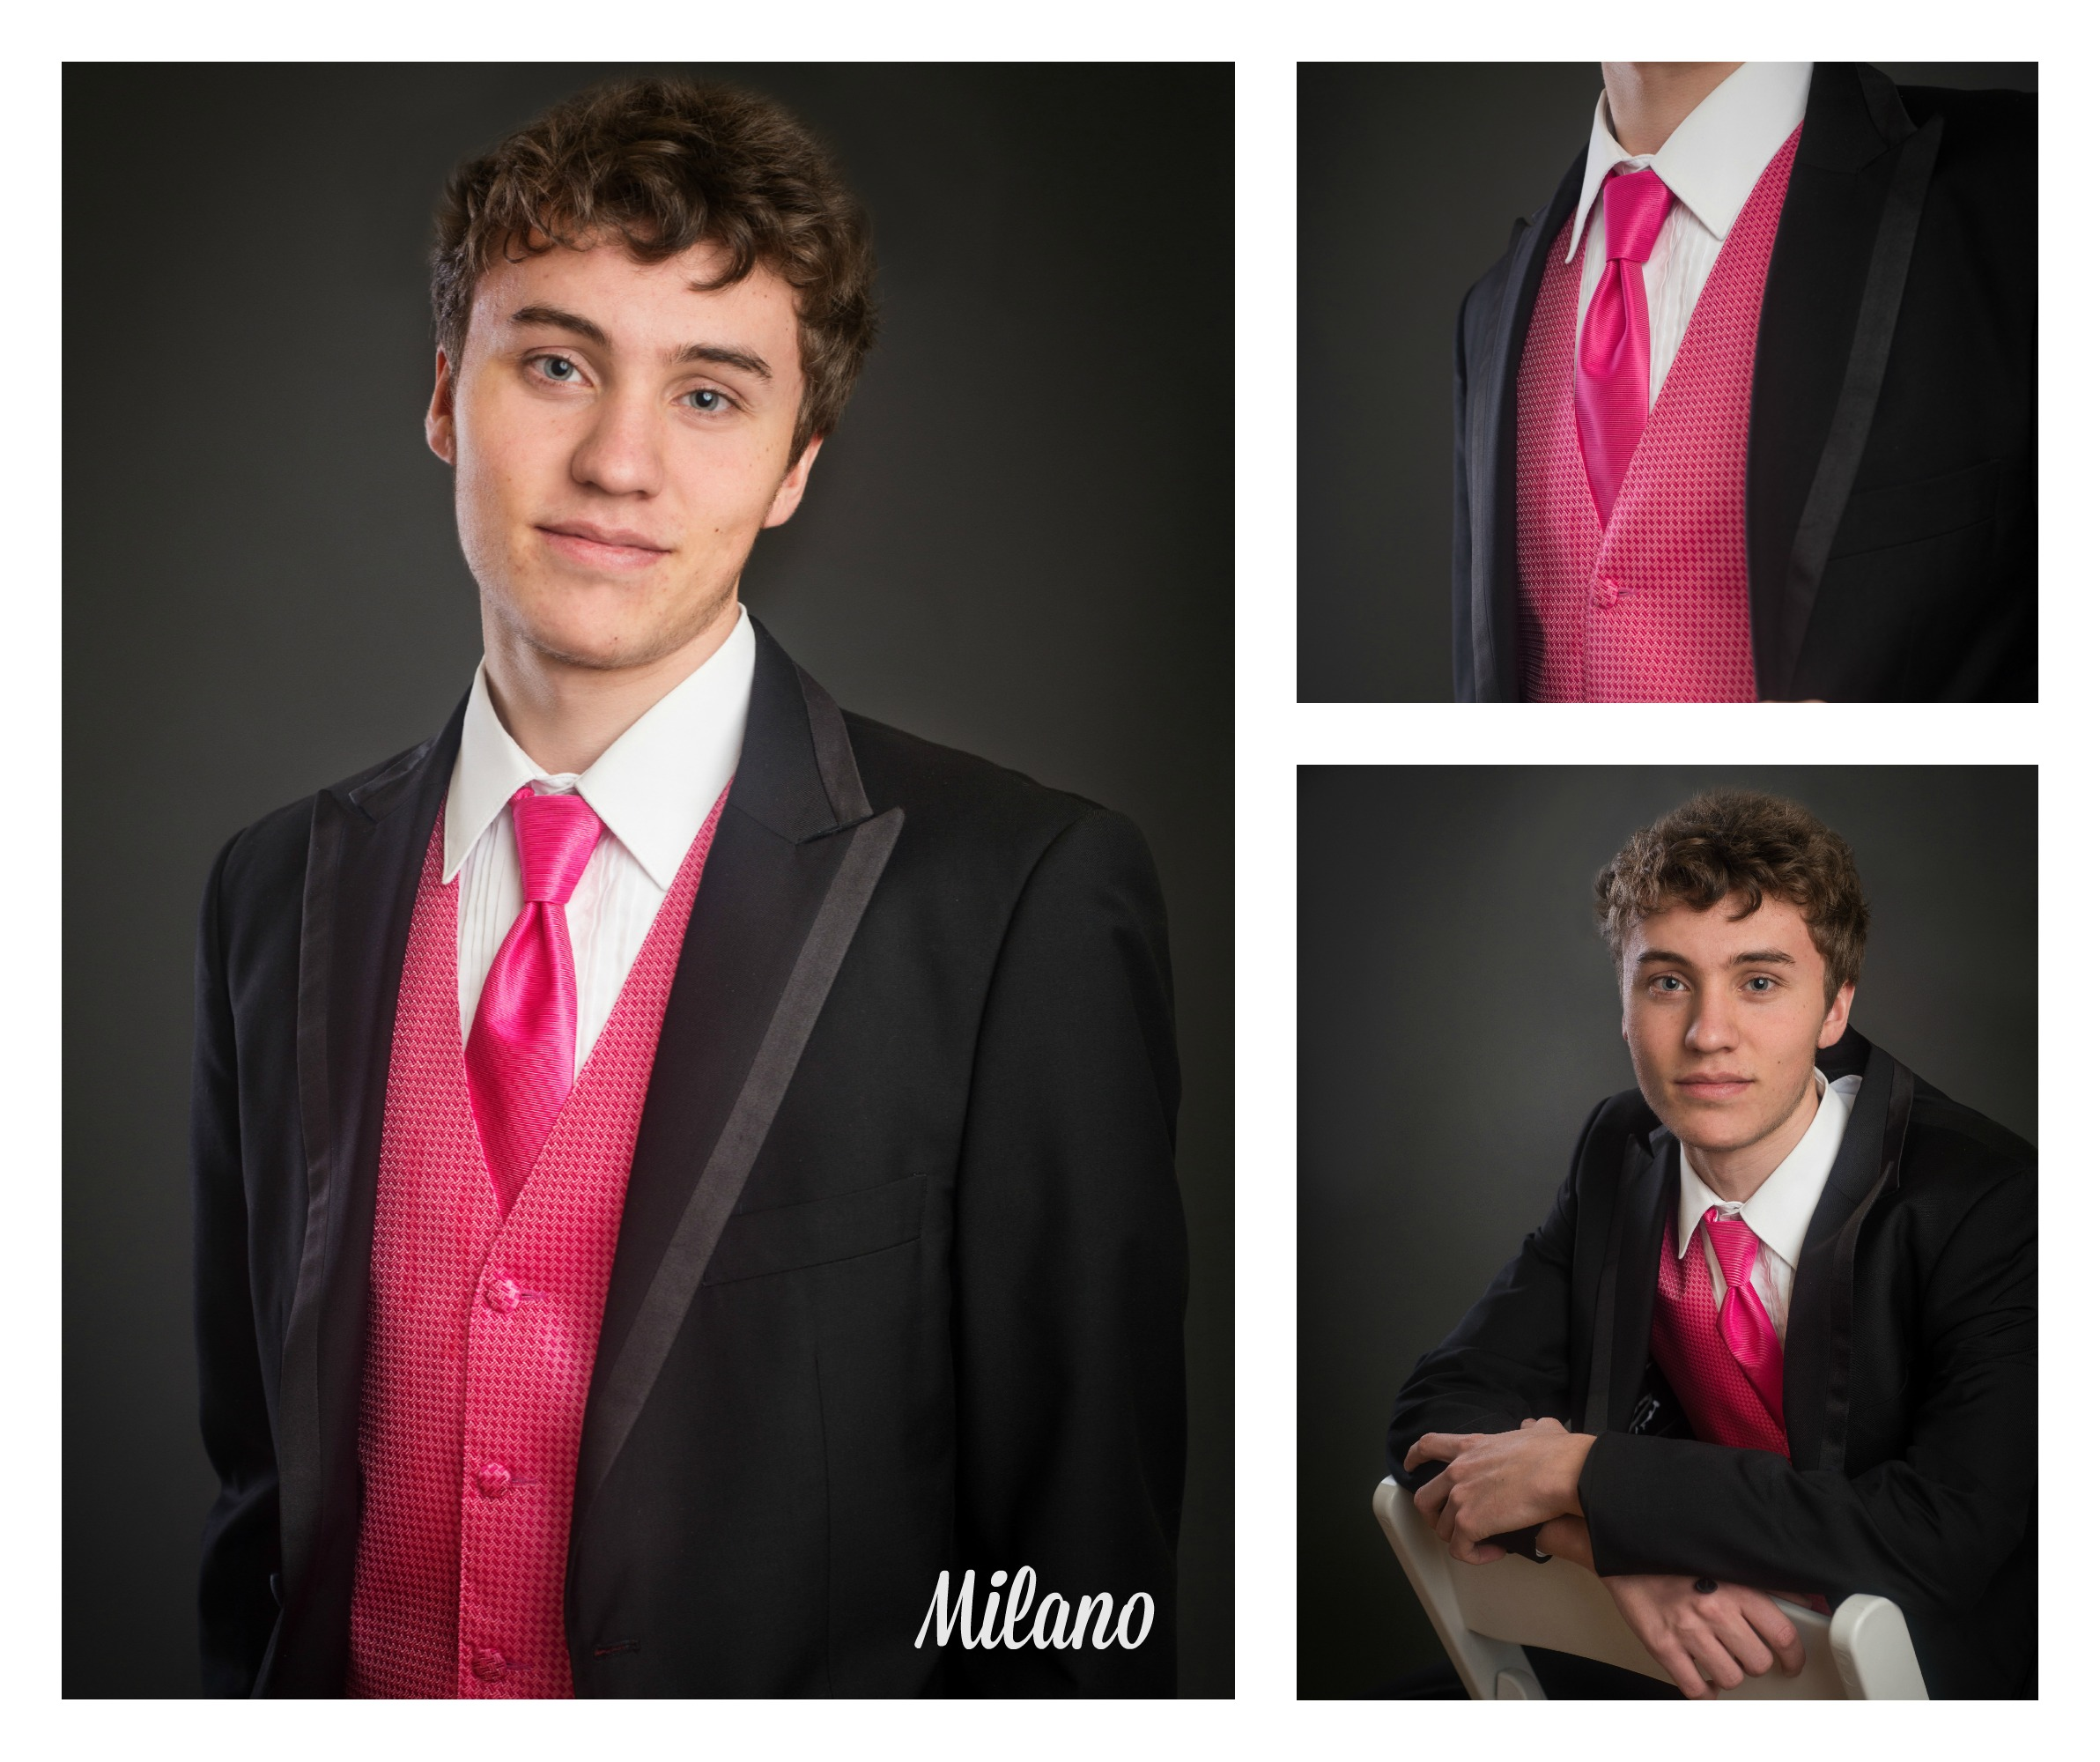 The Milano Tux